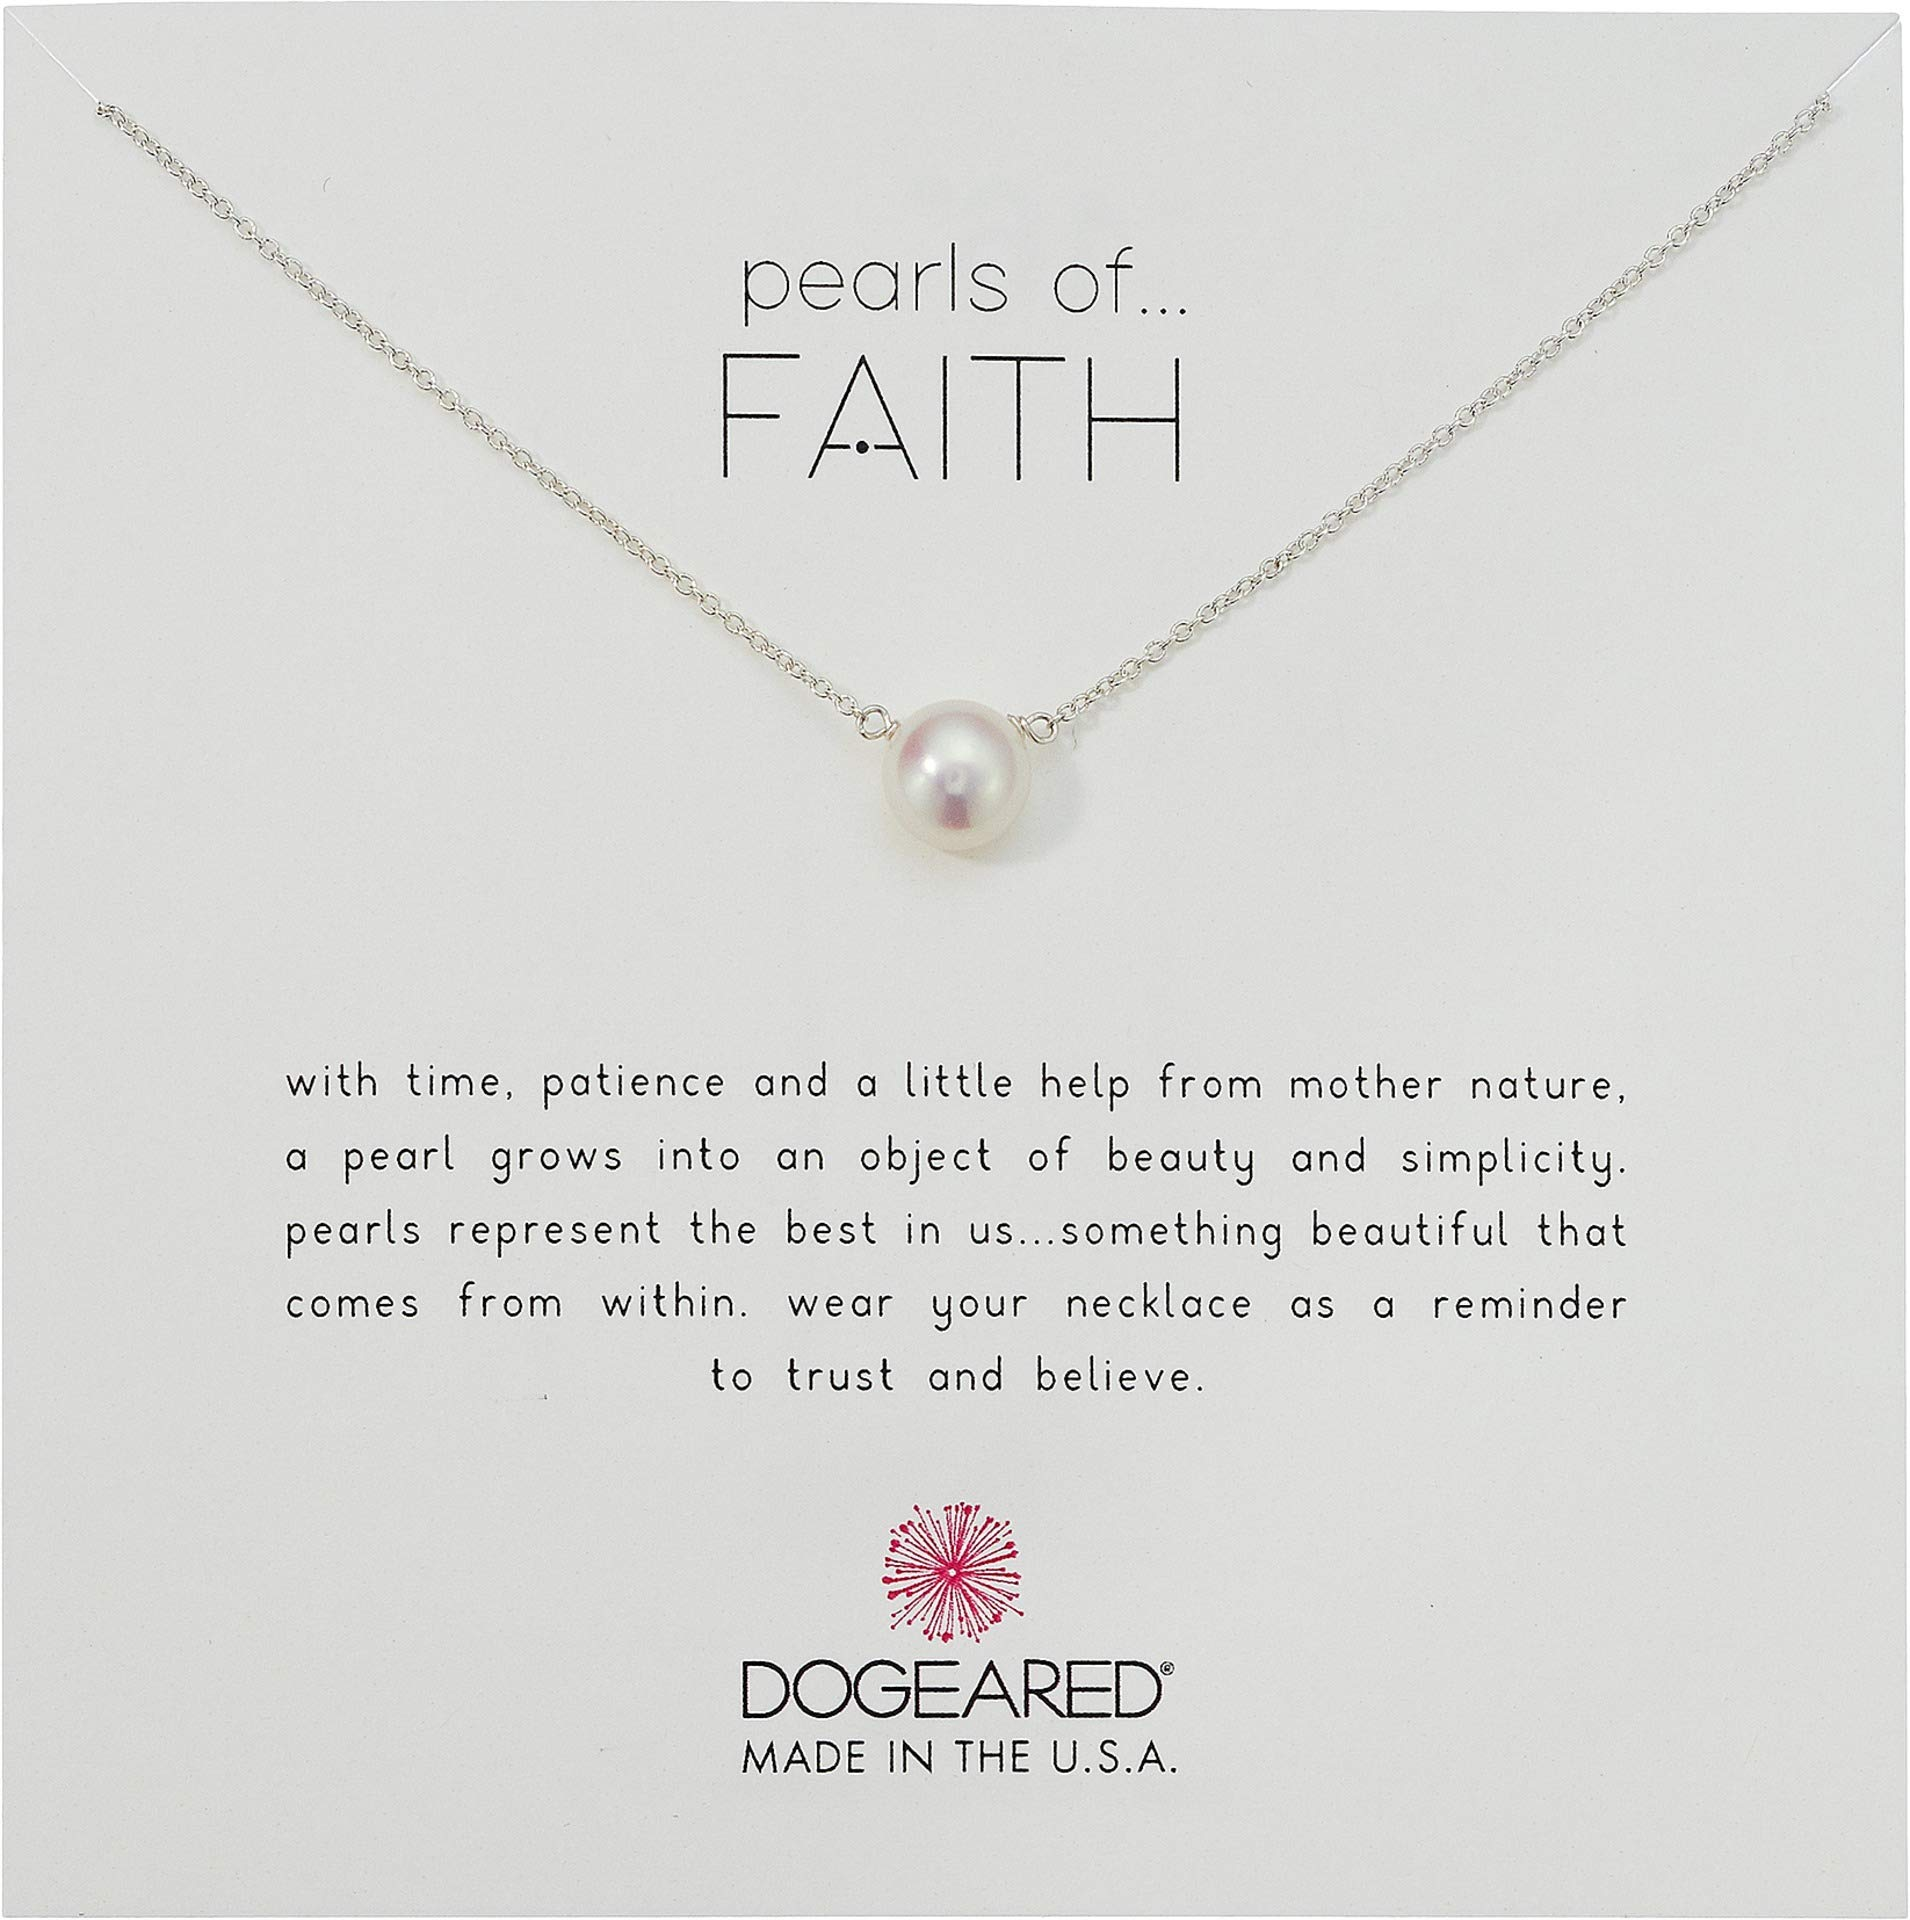 Dogeared Pearls Of Faith Large Button Necklace, Sterling Silver, 16'' + 2'' Extension